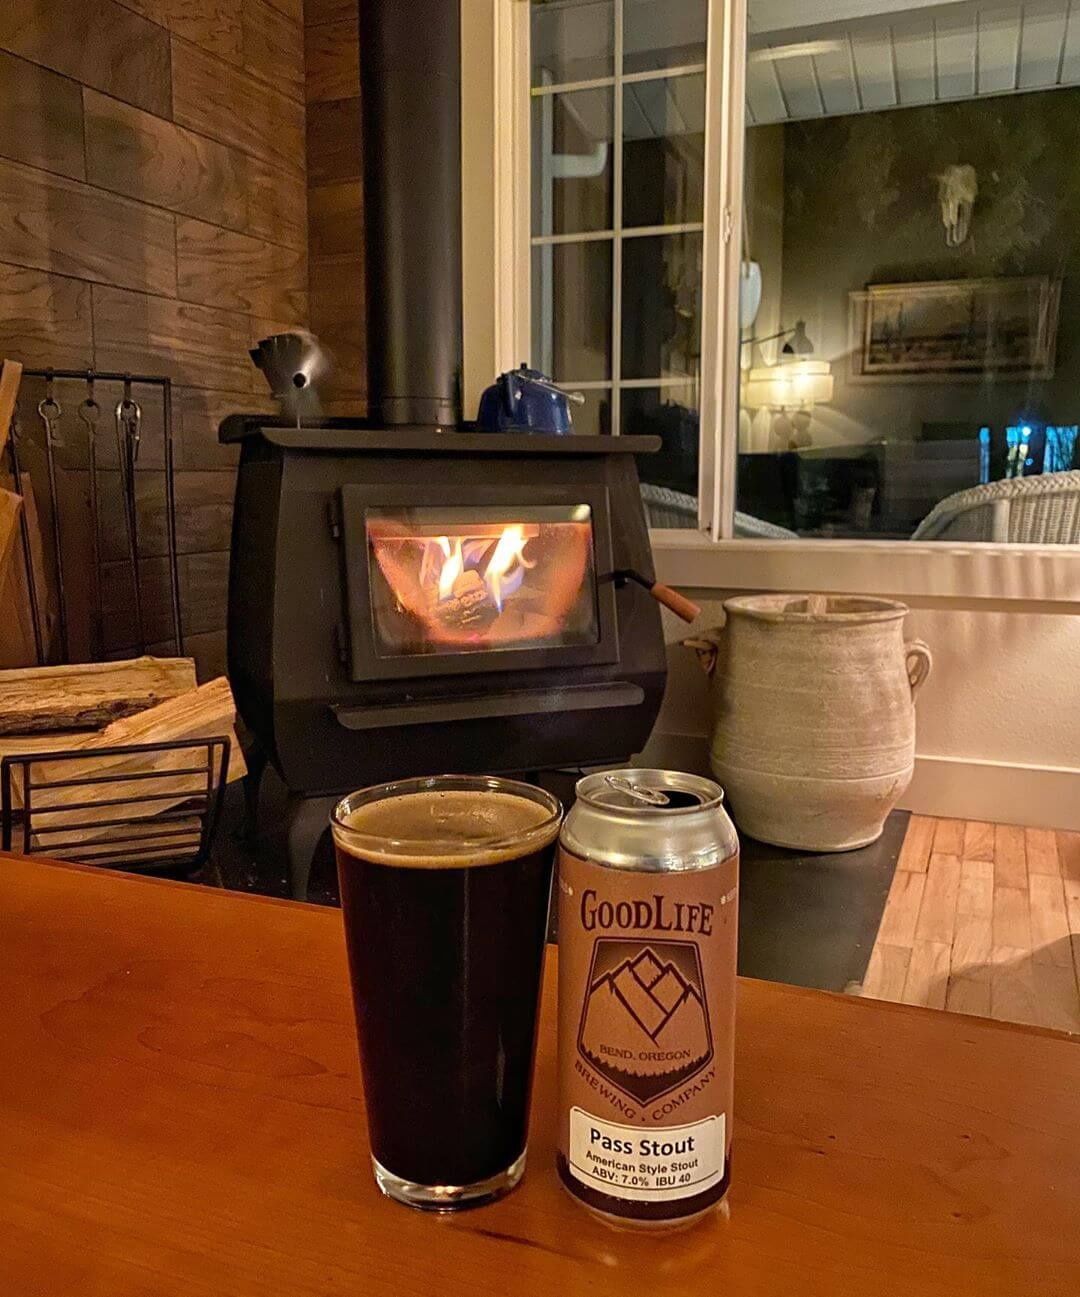 After a fun week of family and friends, we're glad we grabbed a crowler from the pub so we can enjoy a Pass Stout on the couch with the fire cranking! Swing by the pub to get your crowlers of our seasonal and experimental beers so you can enjoy them wherever you want! #whatsyourgoodlife